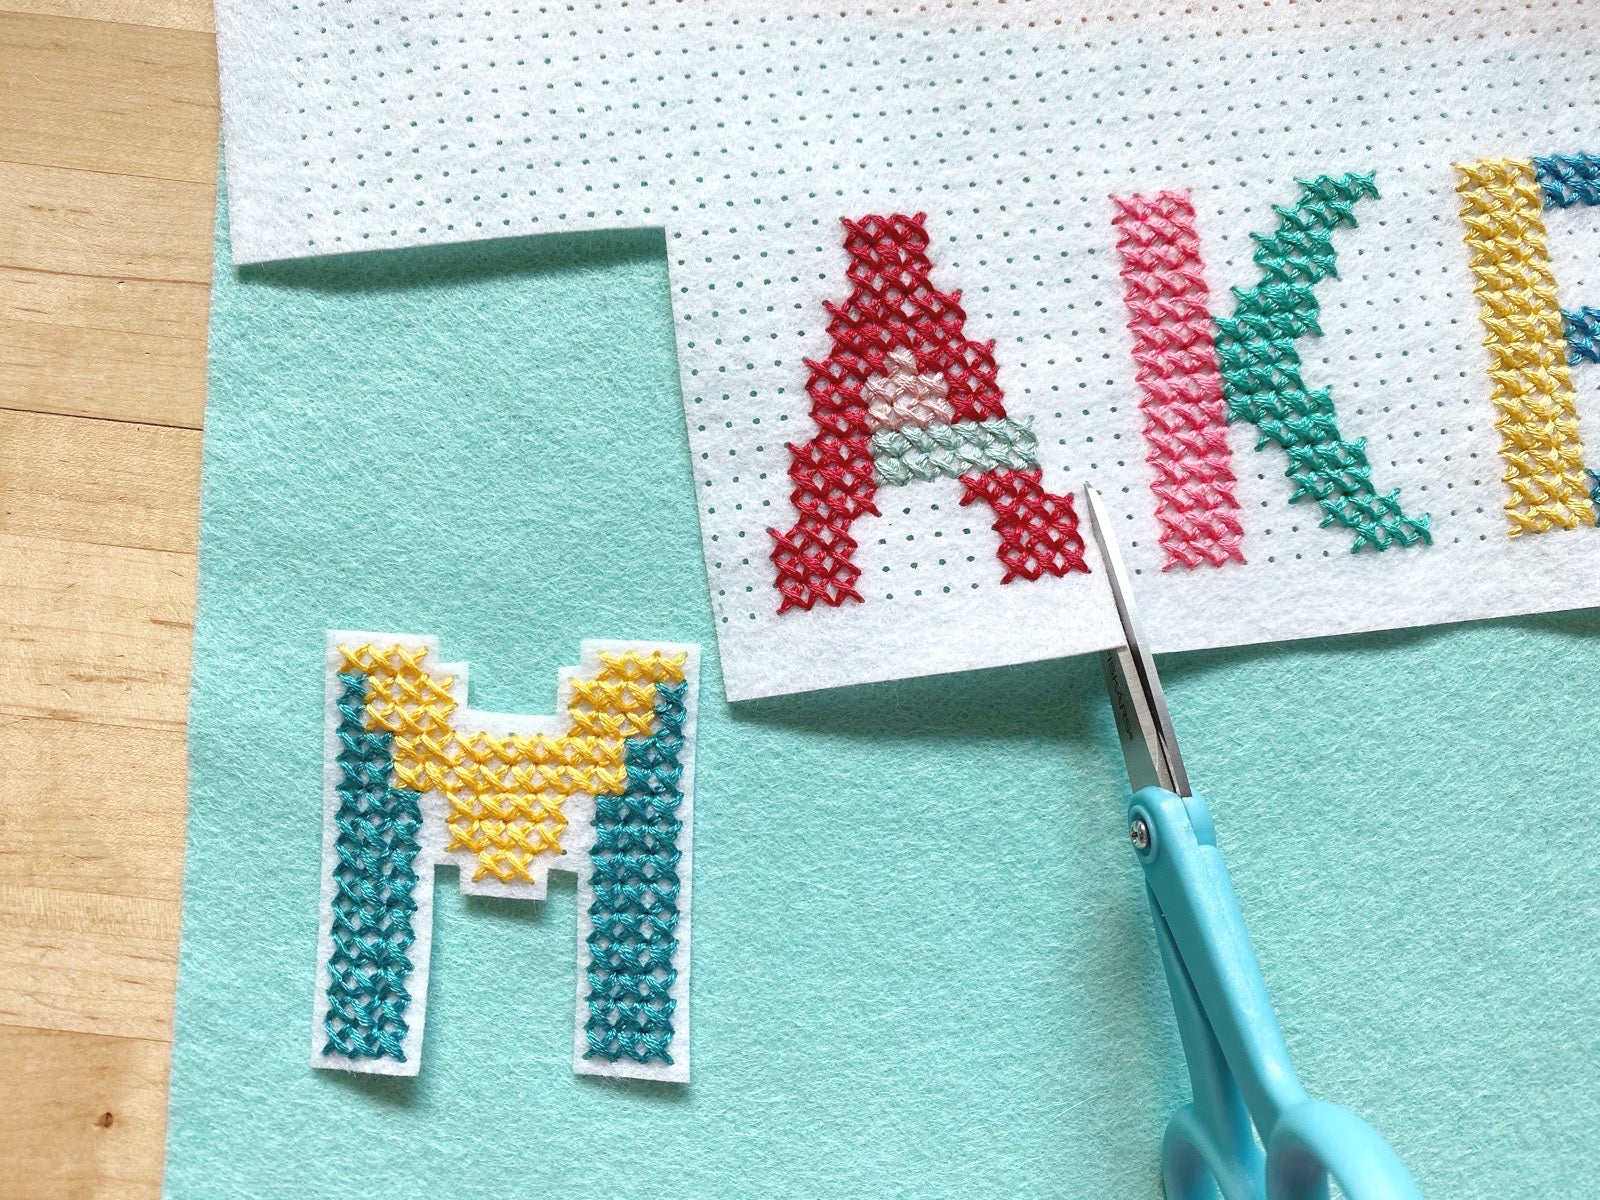 Felt letters to stitch